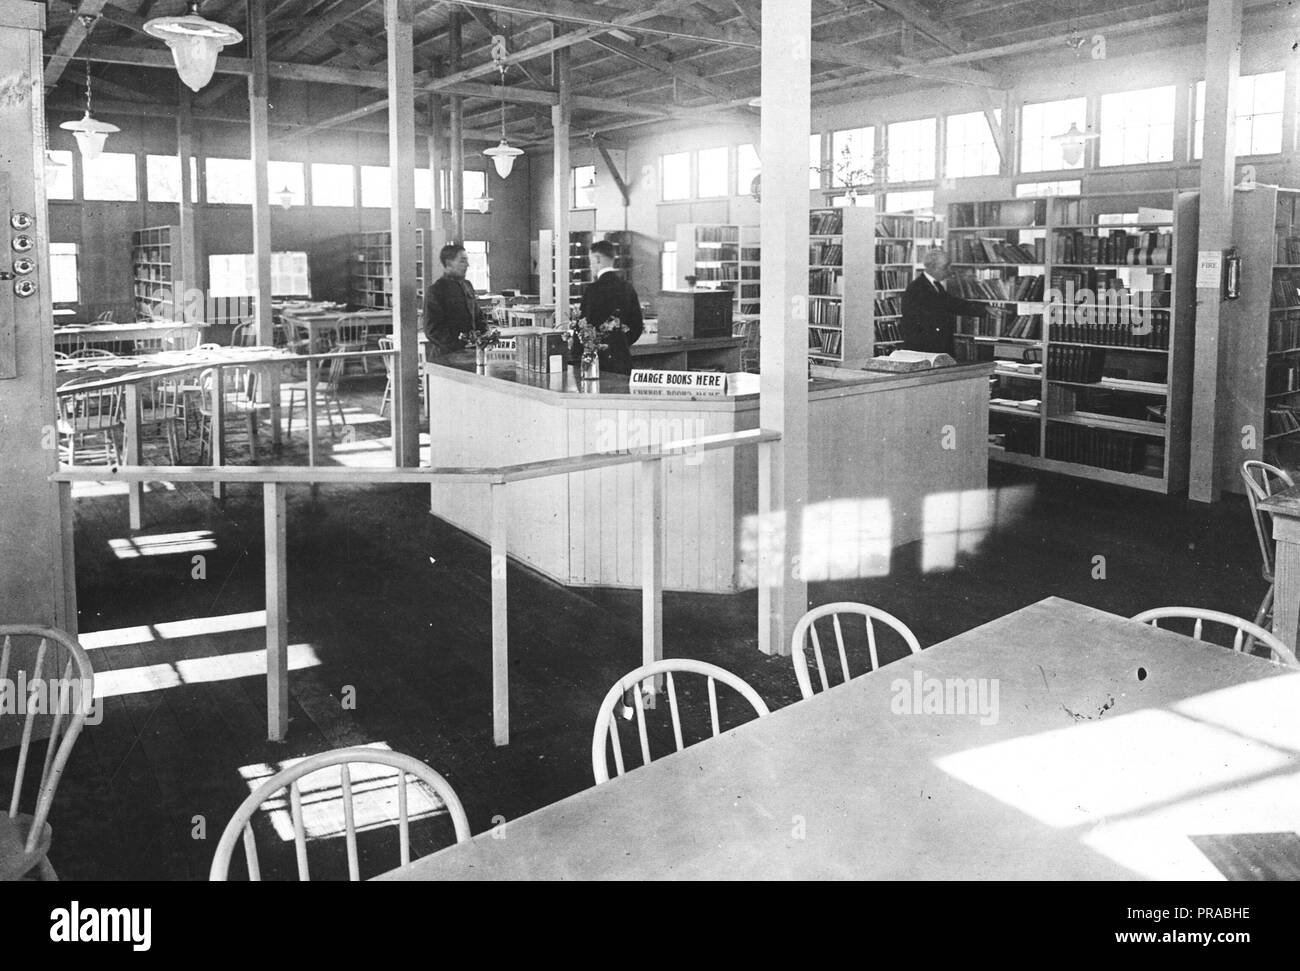 1918 or 1919 - Libraries - Alabama through Iowa - Interior of Library, Camp Fremont, Palo Alto, Cal - Stock Image